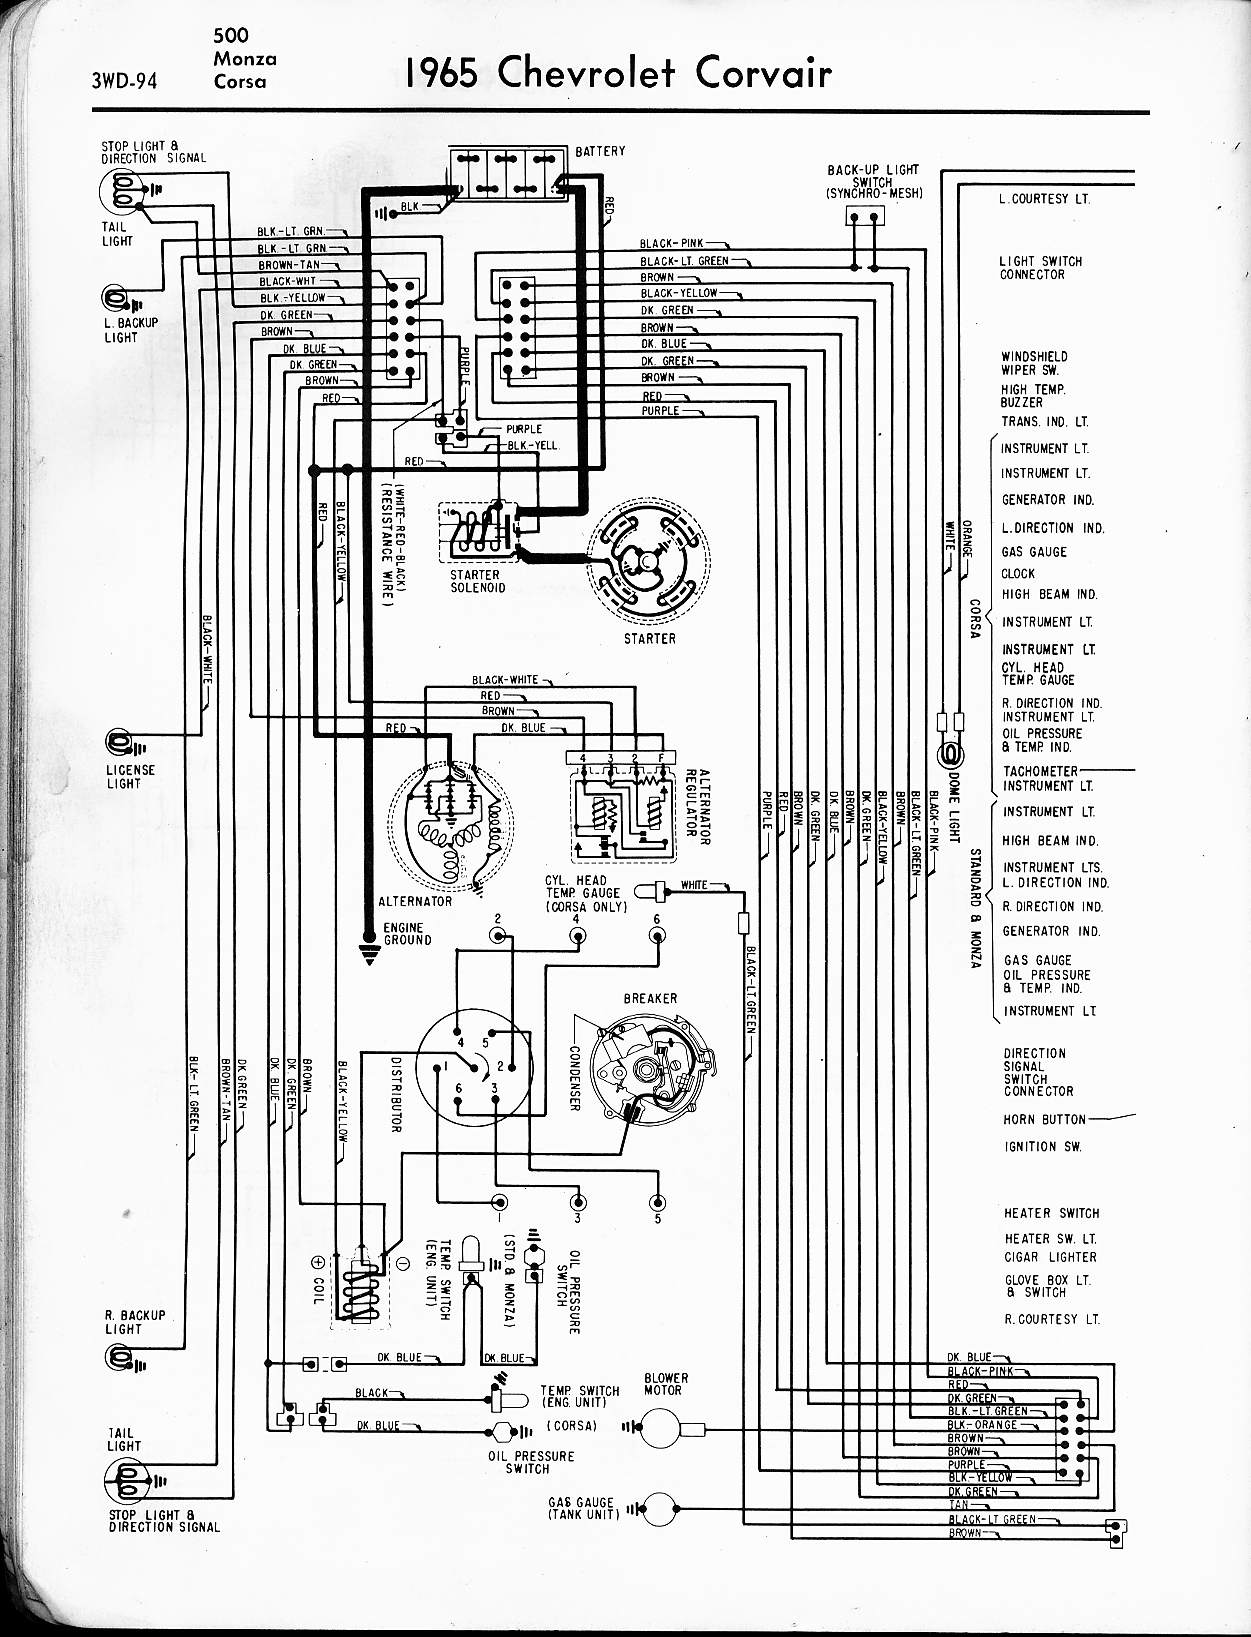 1965 Impala Alternator Wiring Diagram Trusted 65 Chevy 57 Diagrams 67